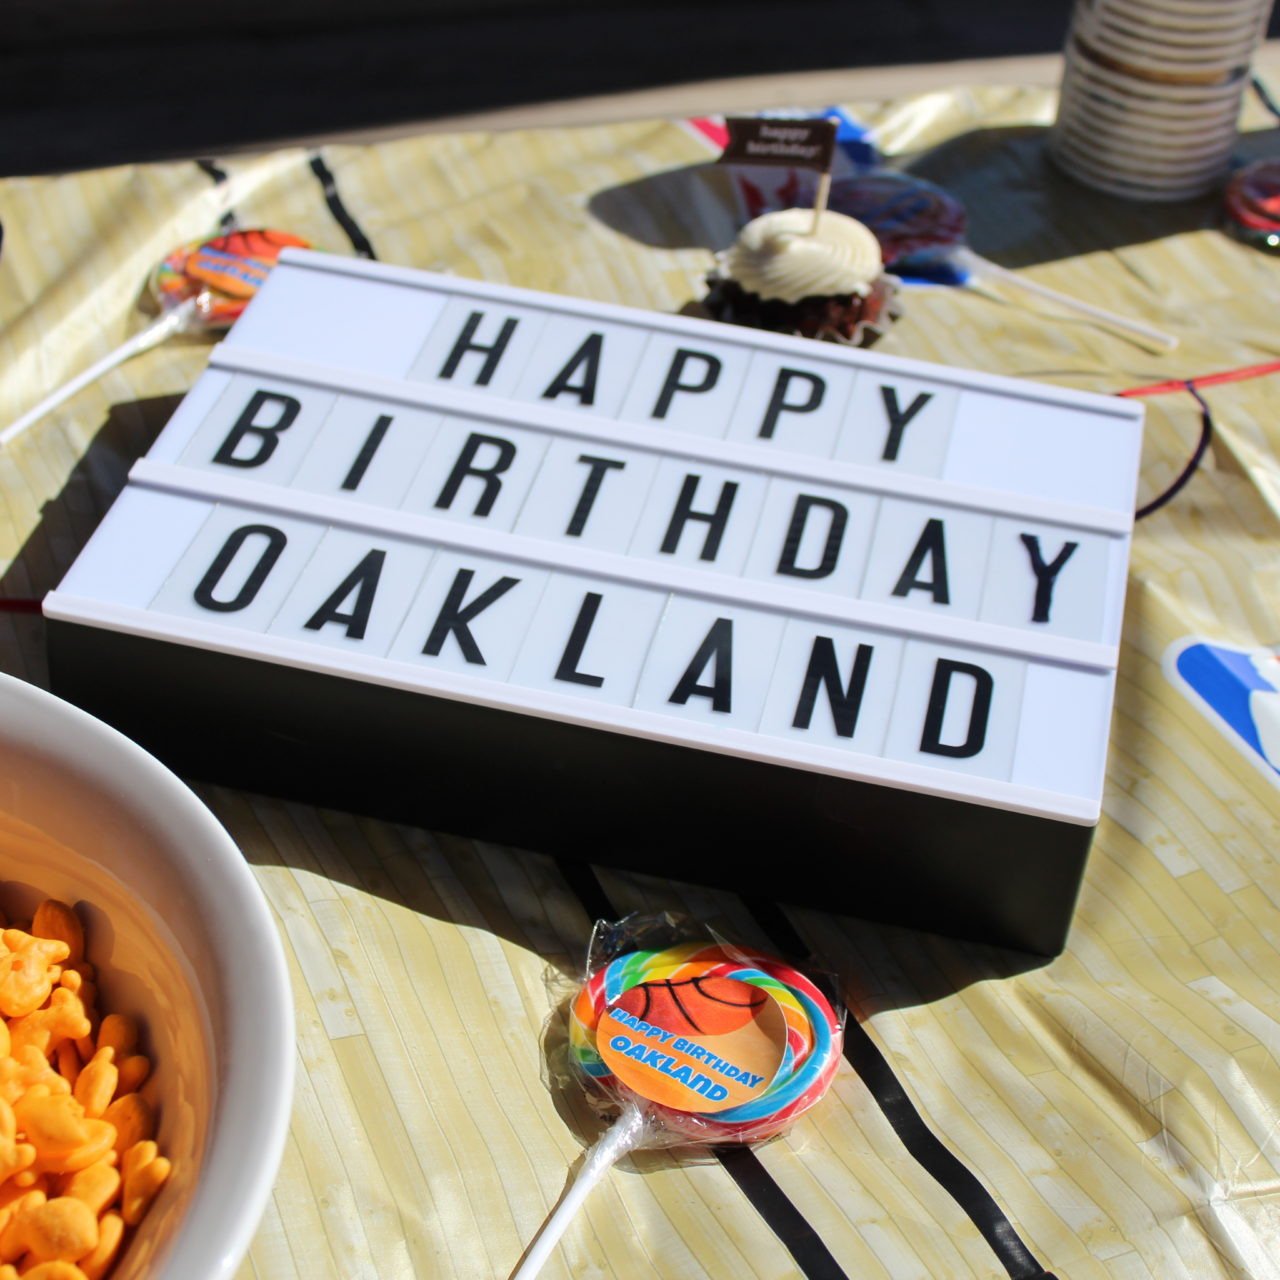 Oakland's Basketball Party!